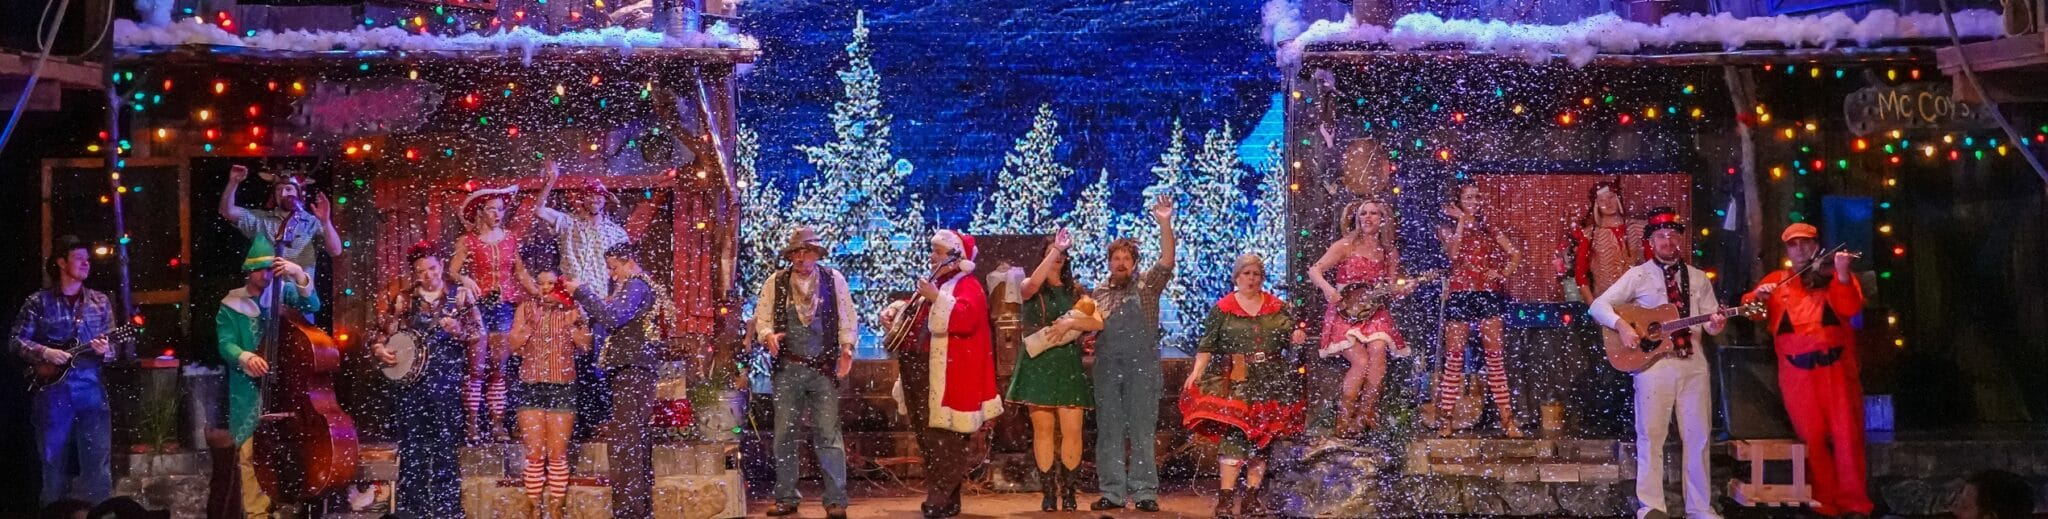 Holiday and Christmas Shows in Pigeon Forge